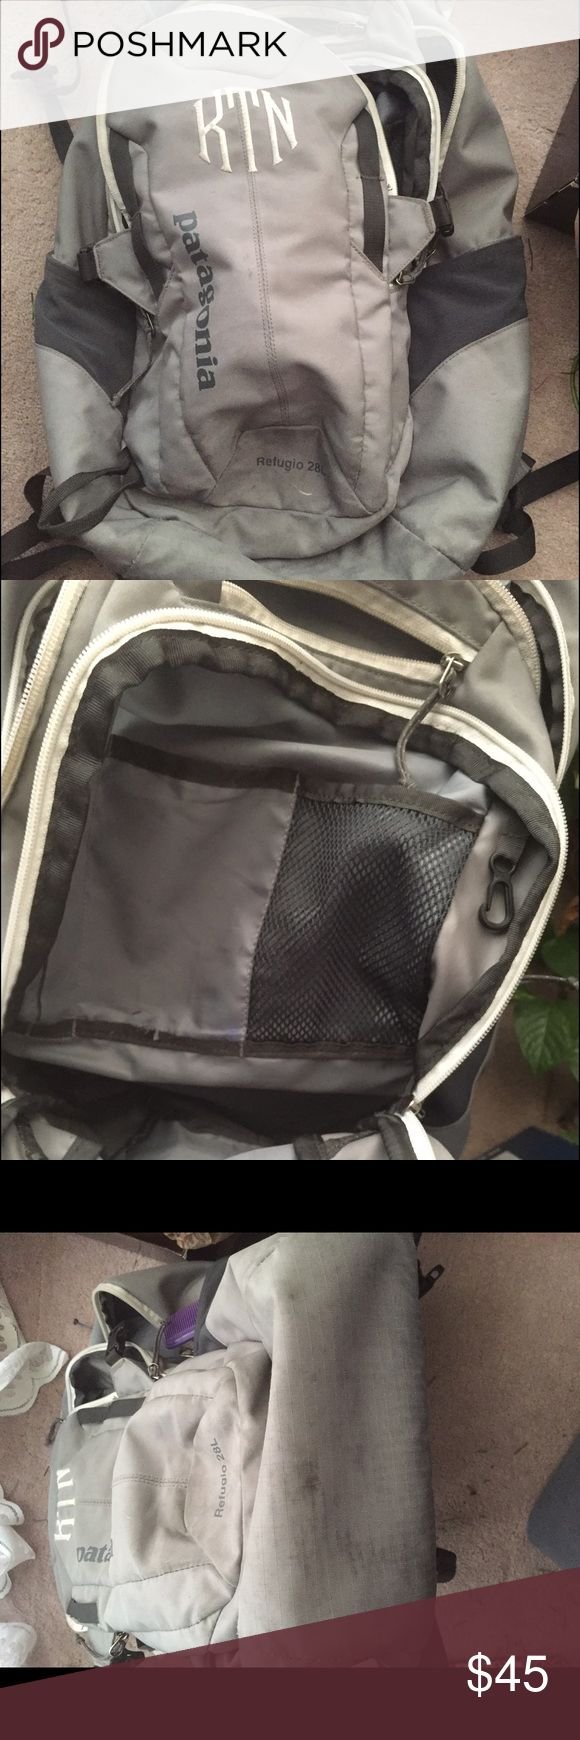 Grey Patagonia Refugio 28L backpack This is a worn, pre-monogrammed Patagonia Refugio 28L backpack! The colors are a light heather gray, with dark grey and white accents. Some of the white accents have discolored due to usage. This backpack has seen its use but is still in great shape! It has some stains, mostly on the bottom of the bag and on the bottom front of the back that could probably be fixed with dry cleaning! There is an ink stain on one of the inside pockets but won't be noticed…